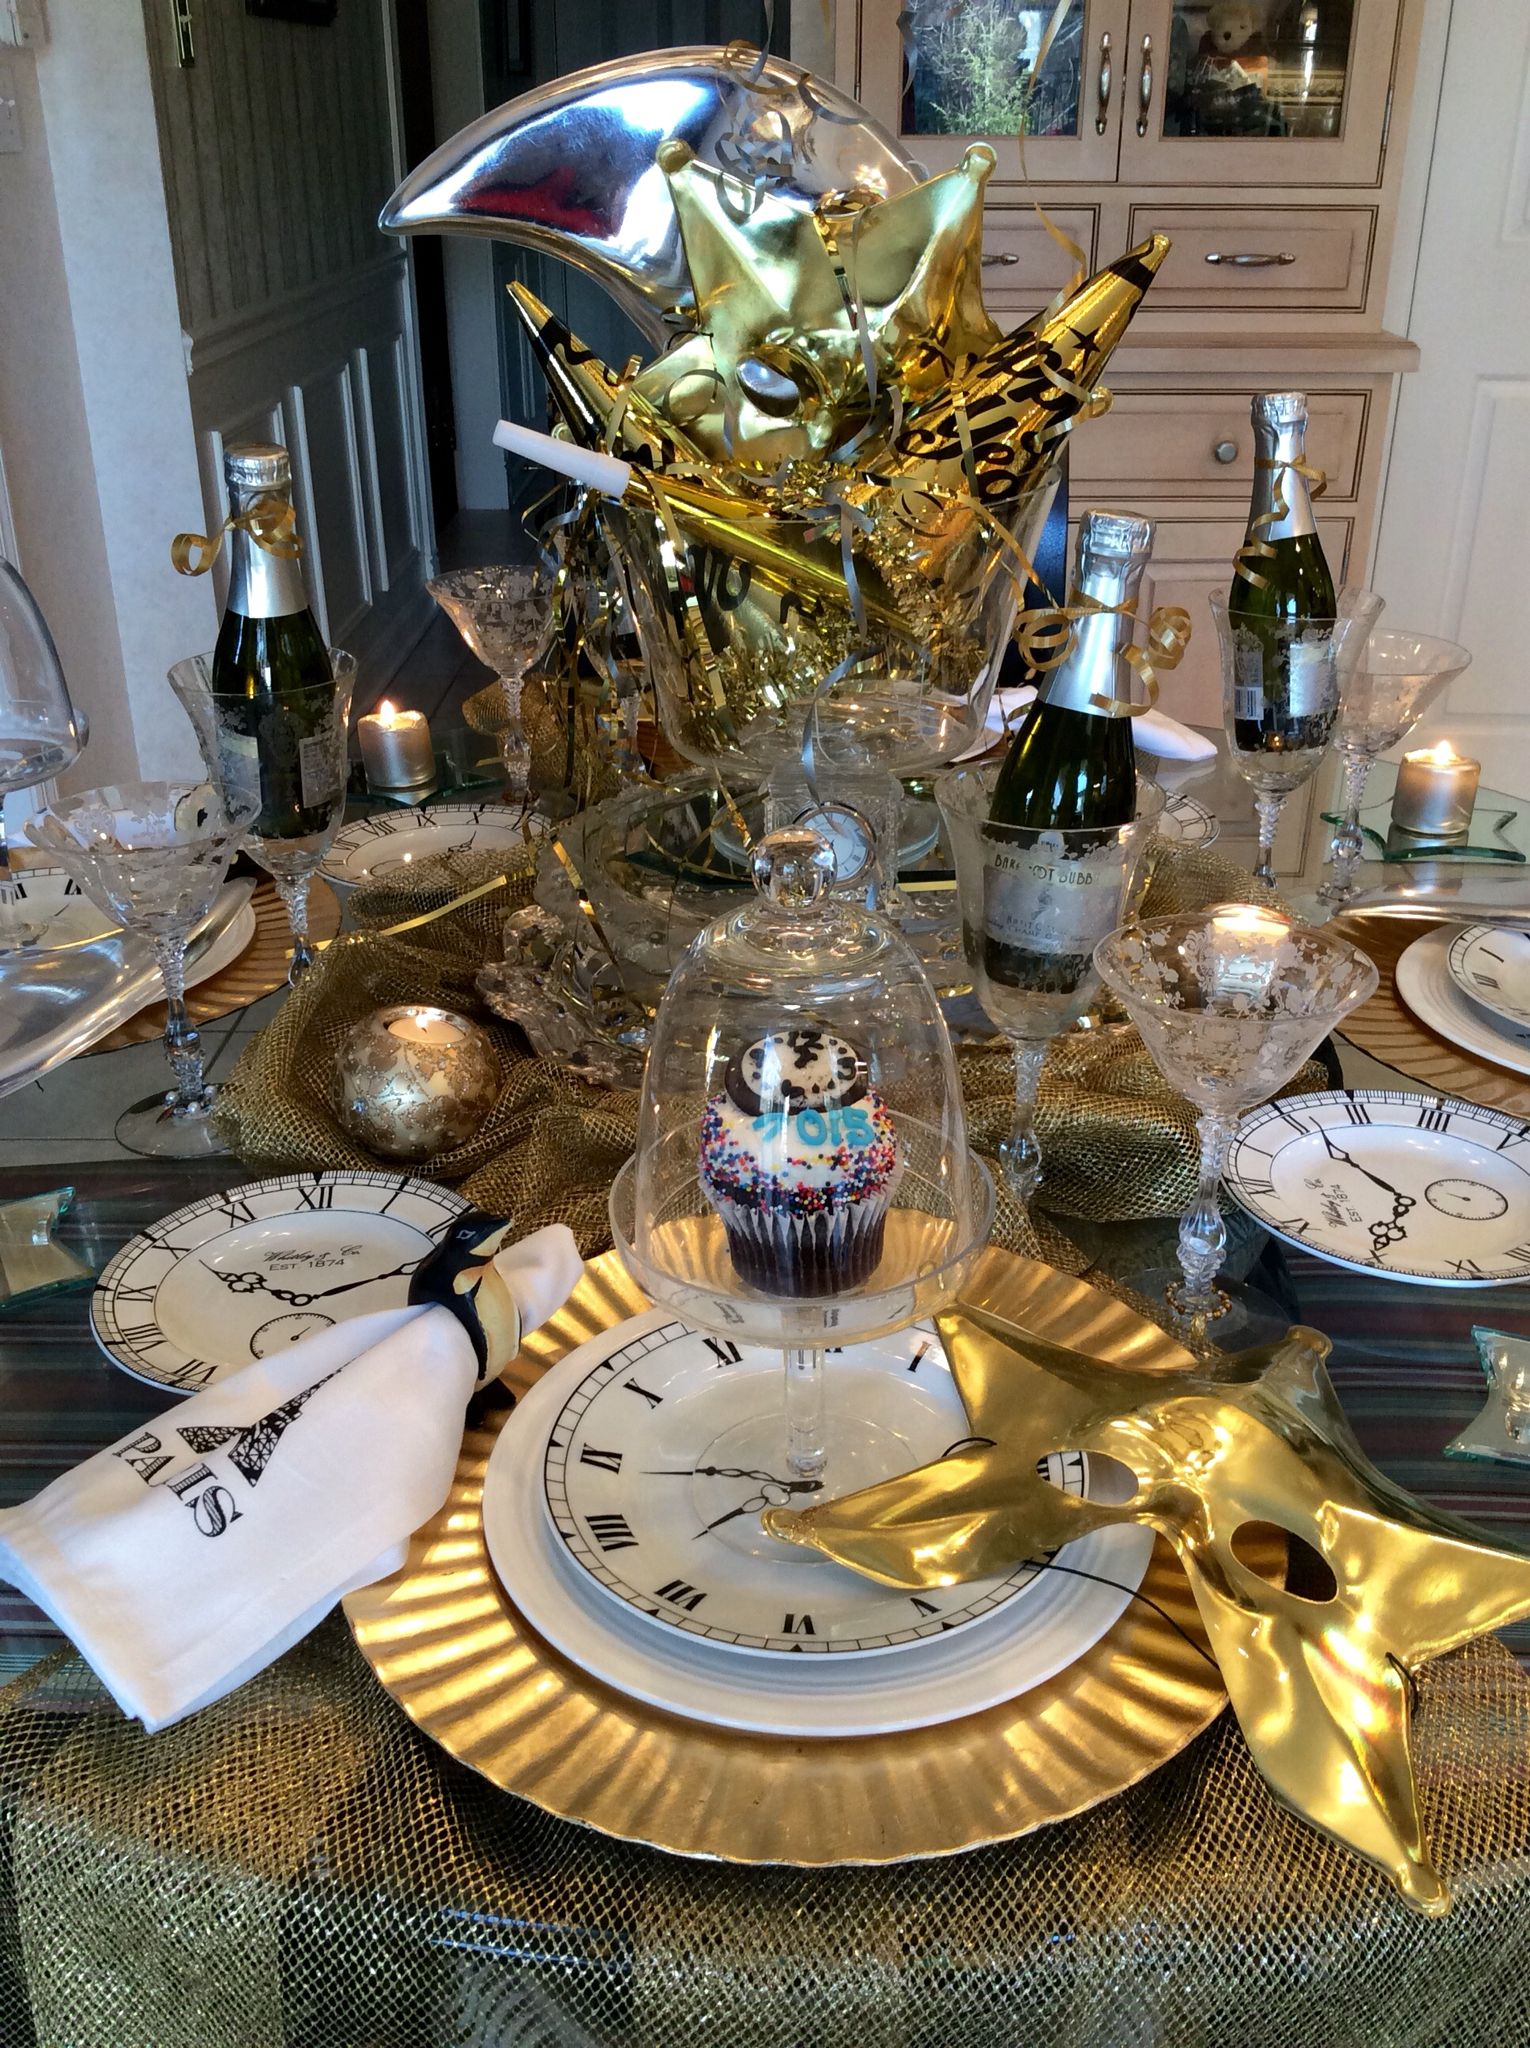 Celestial Tablescape Rings in New Year | Tablescapes, New ...